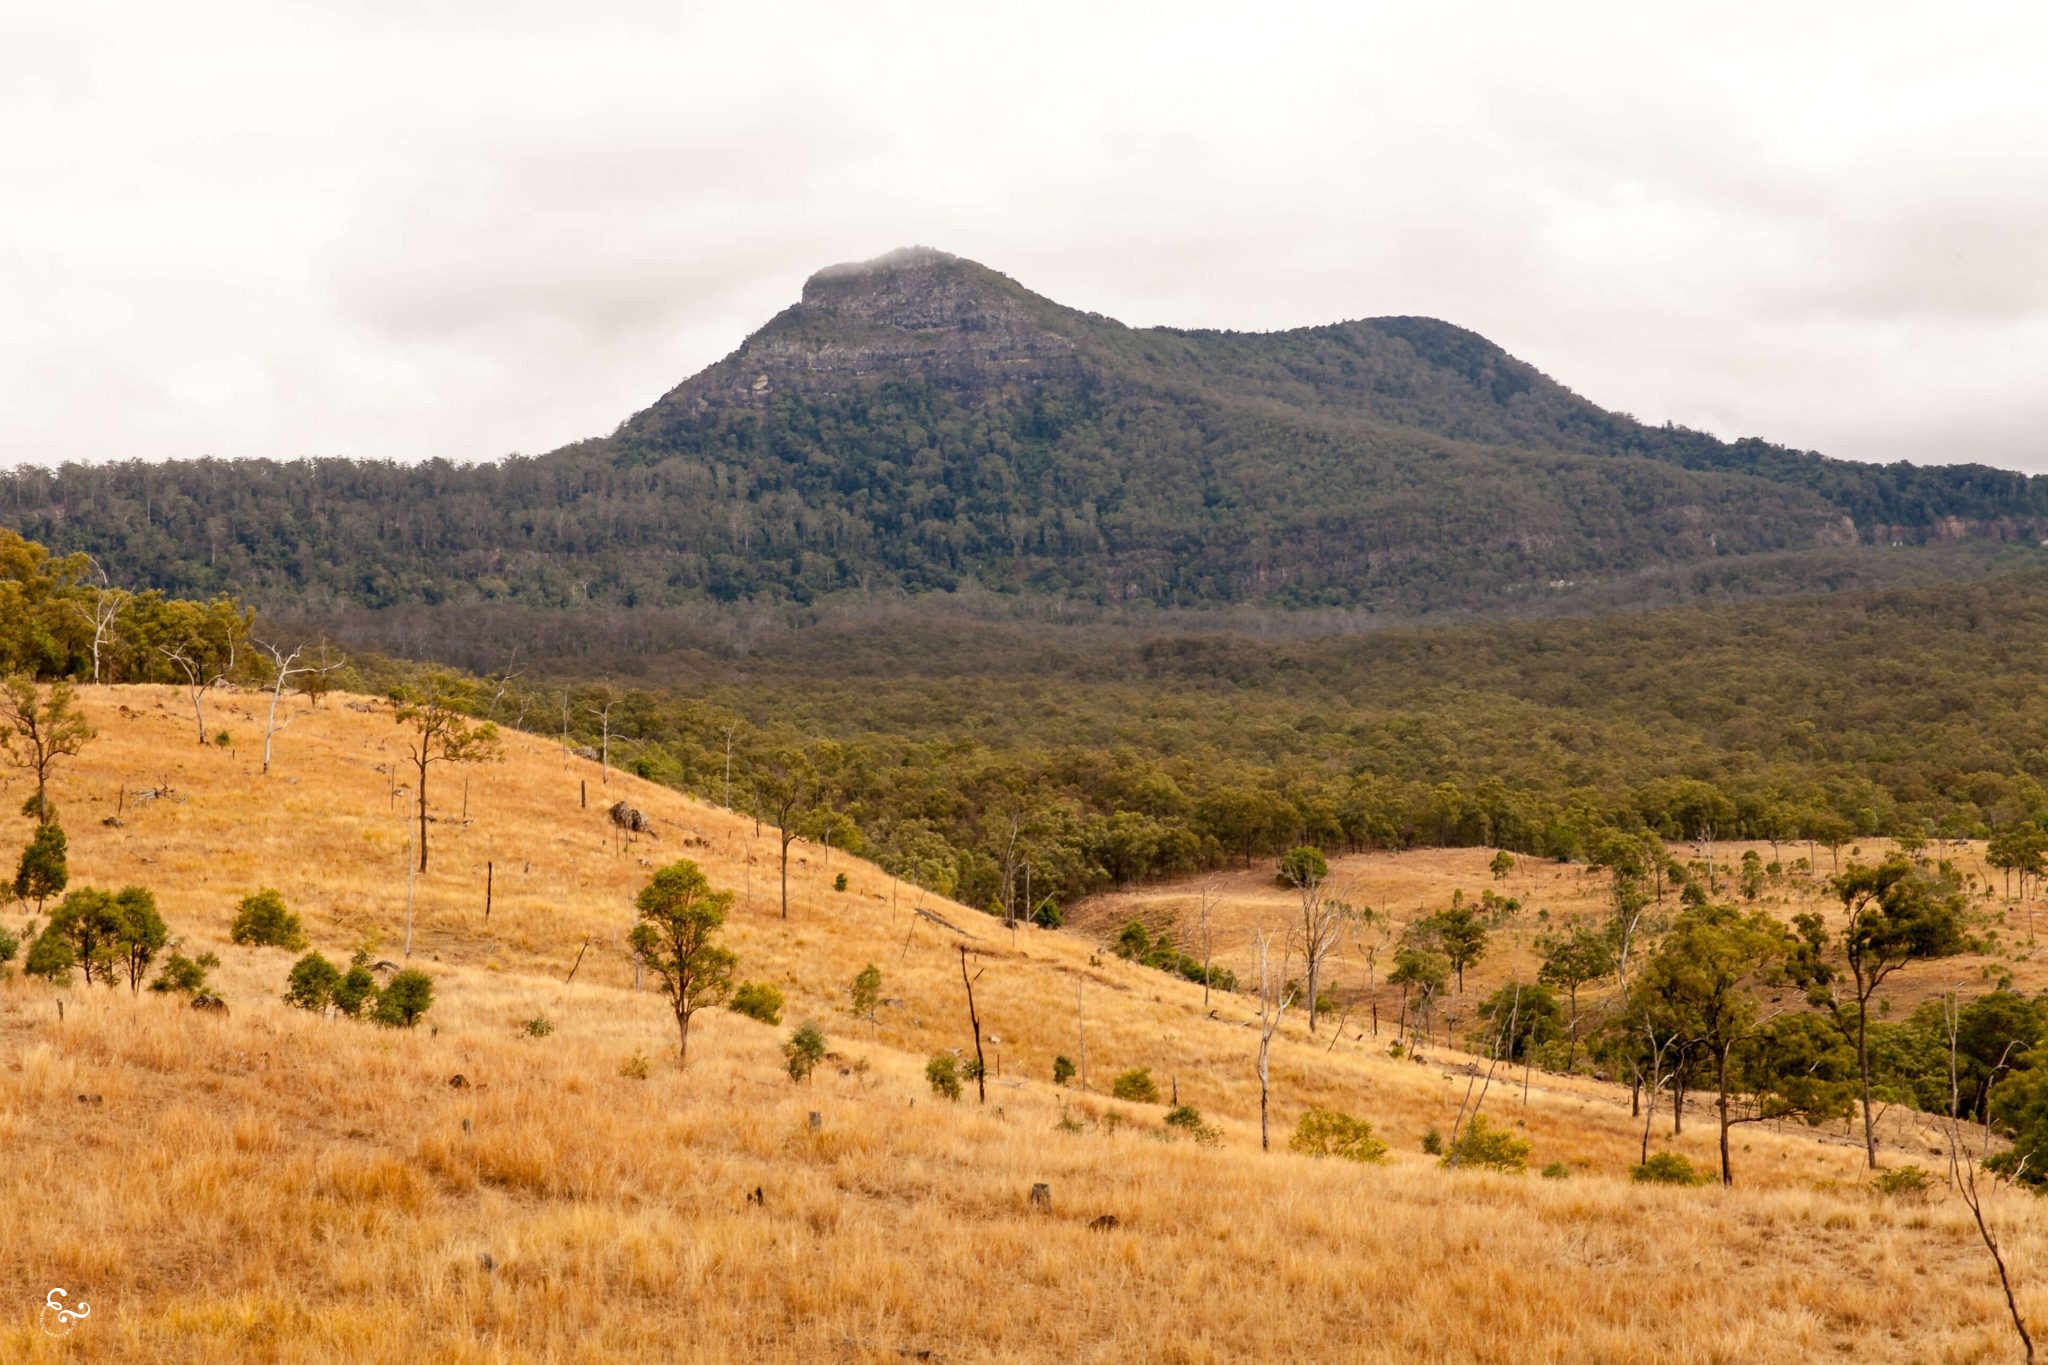 Stanthorpe Queensland road trip travel photography wineries mountains scenic rim - Nowhere & Everywhere - Lis Dingjan